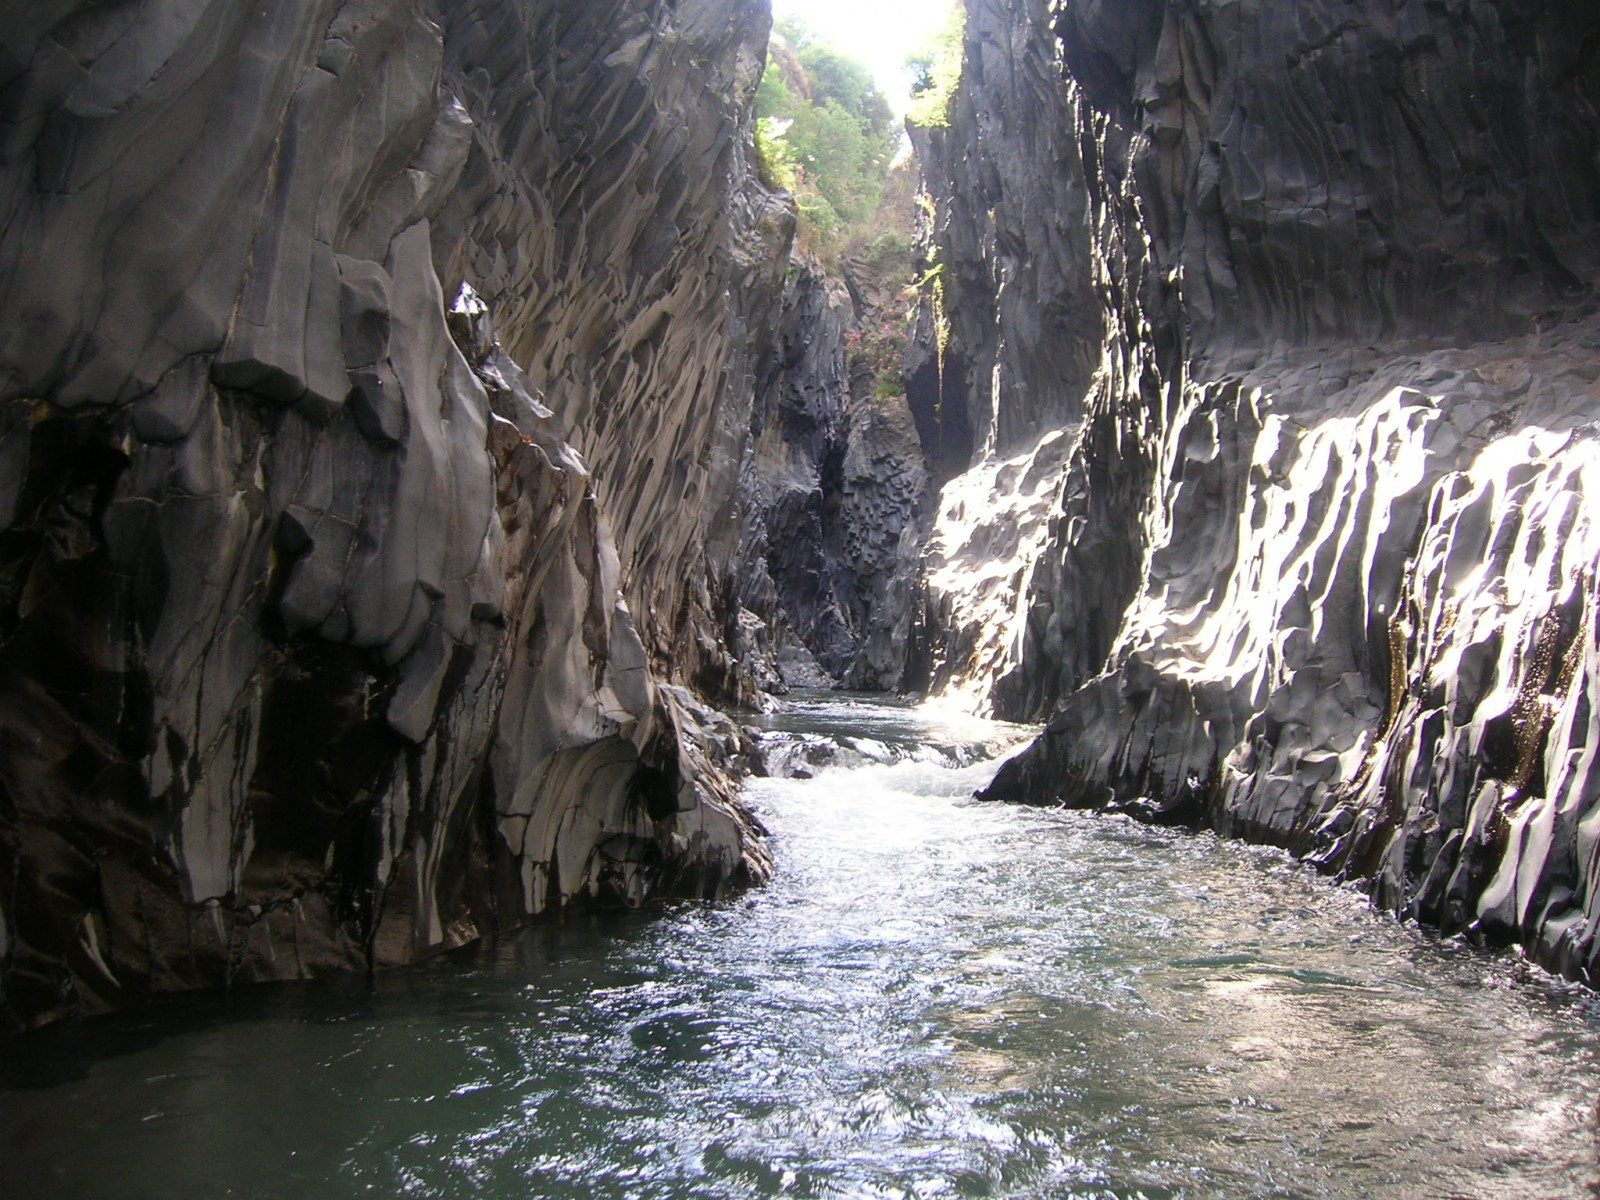 Alcantara Gorge Tour: 6 things to do in the Gorges of the Alcantara